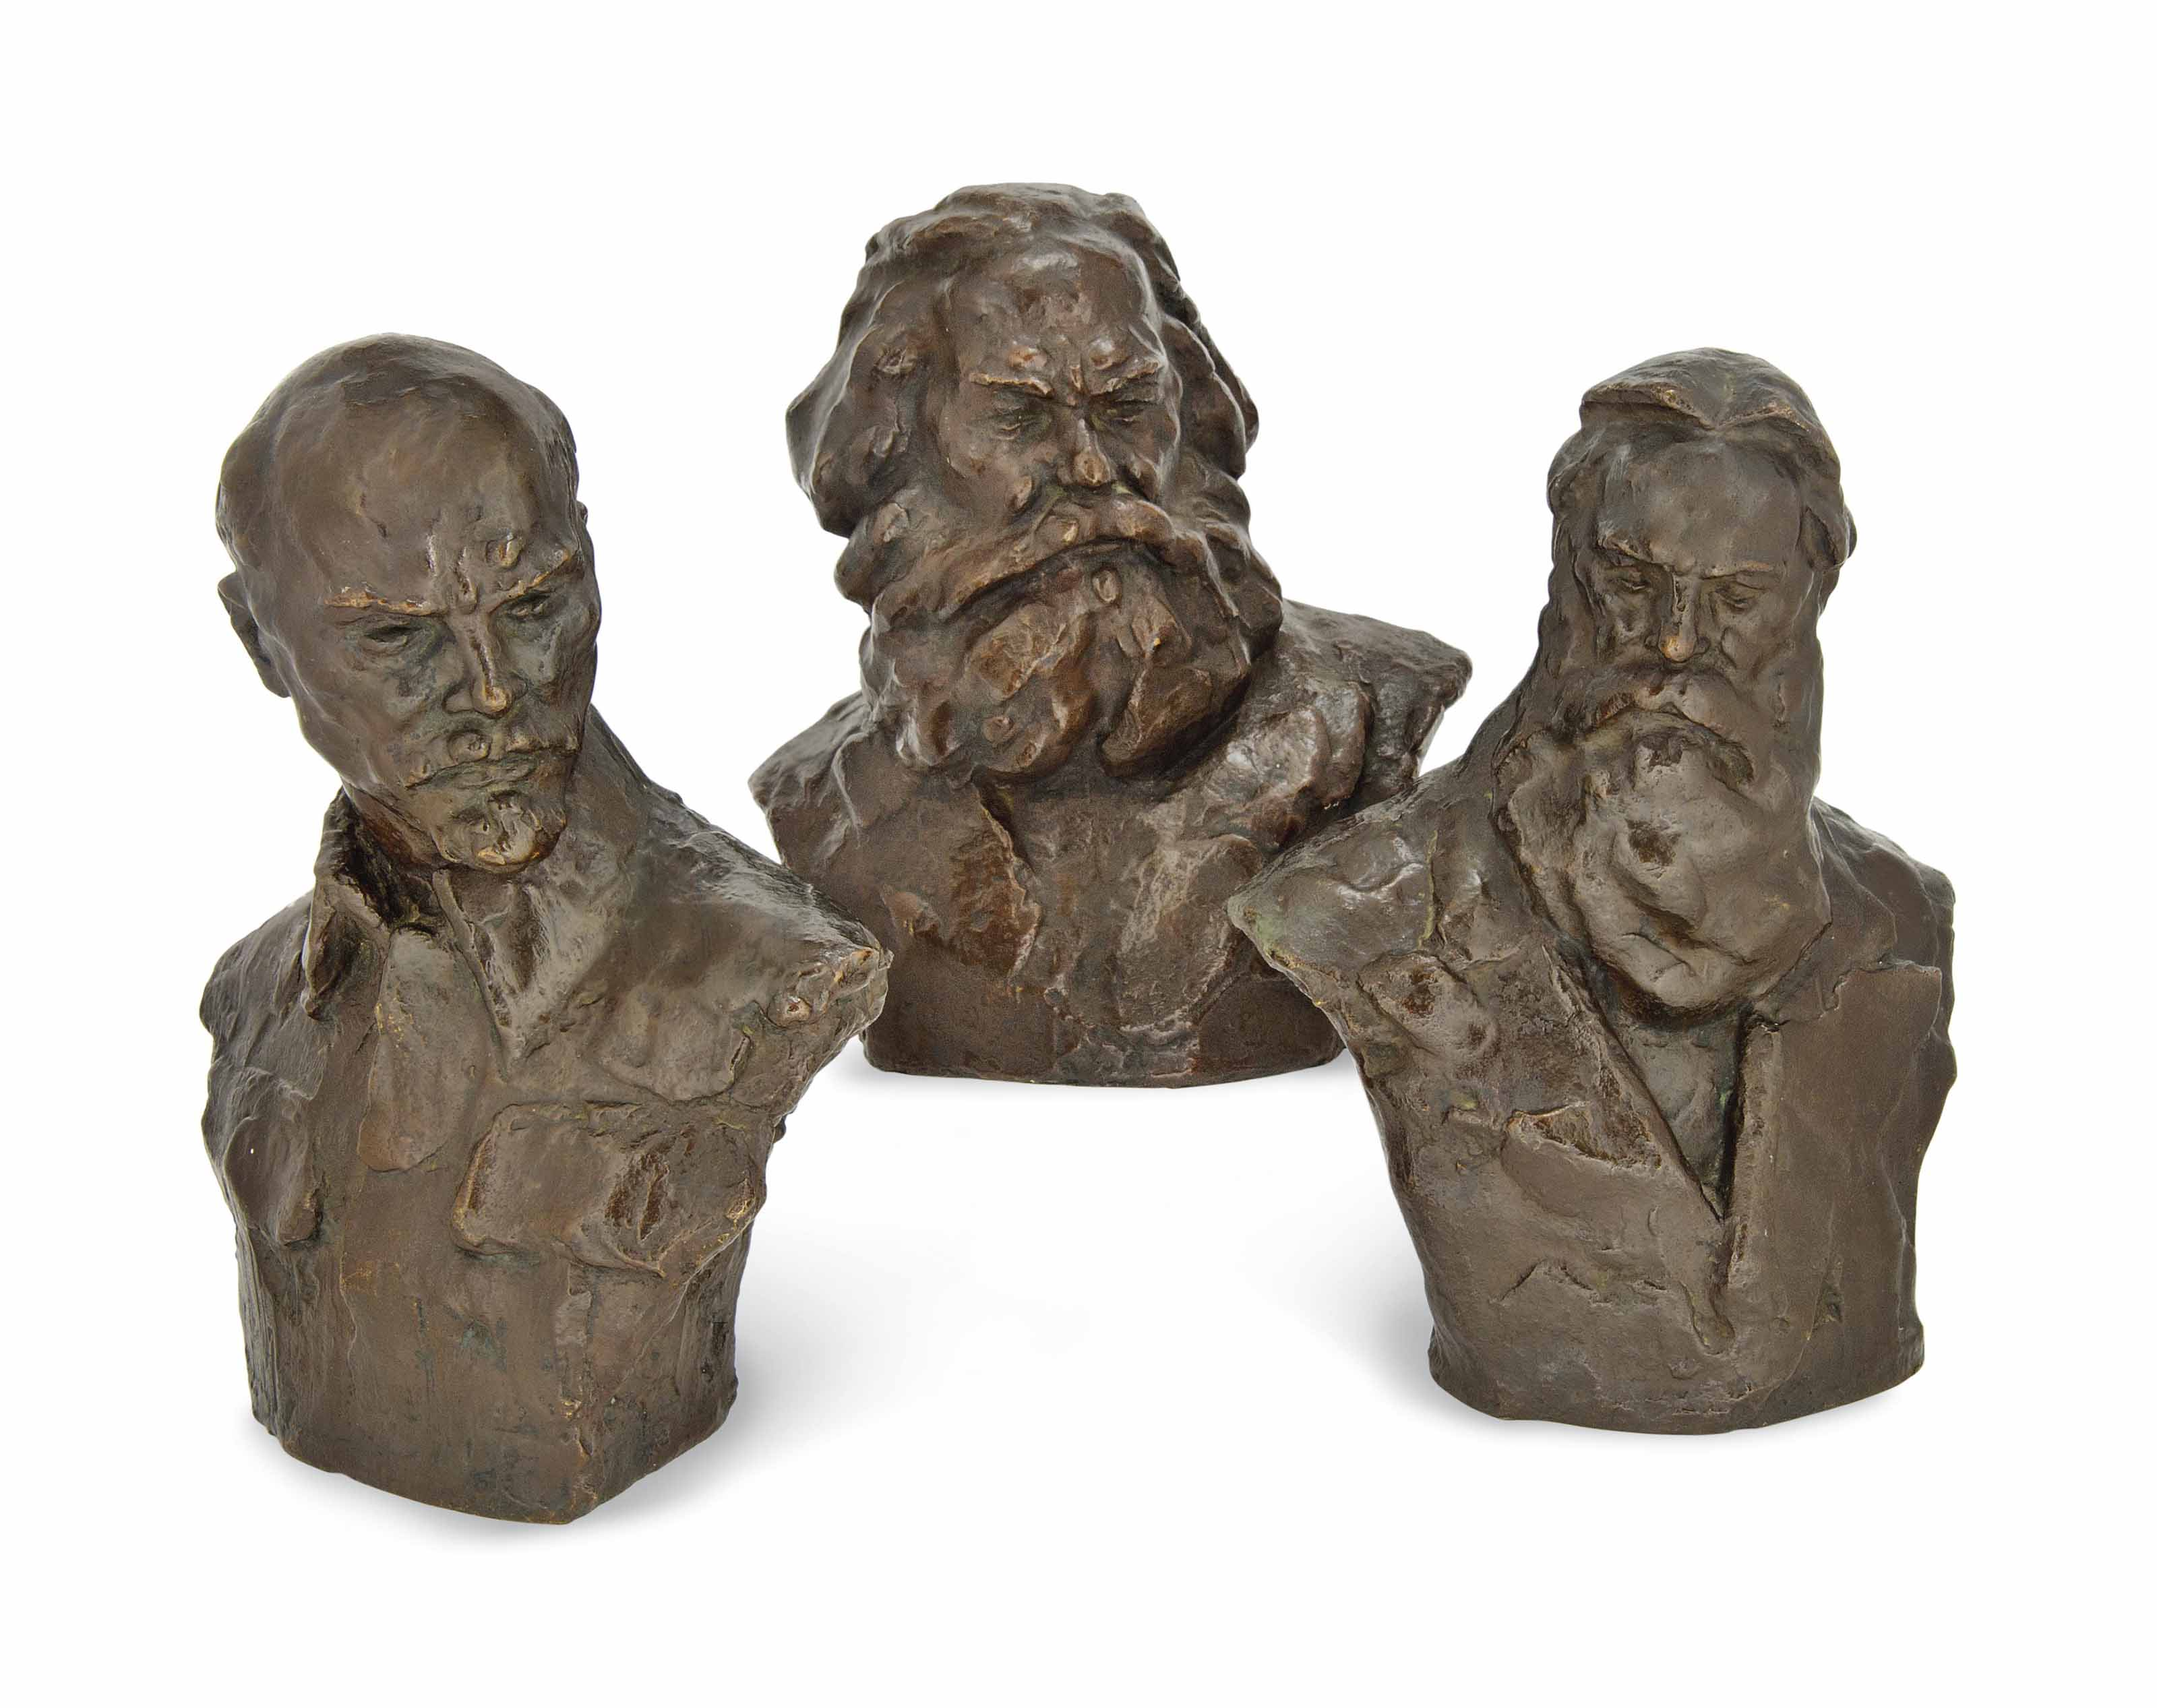 THREE BRONZE BUSTS OF KARL MAR